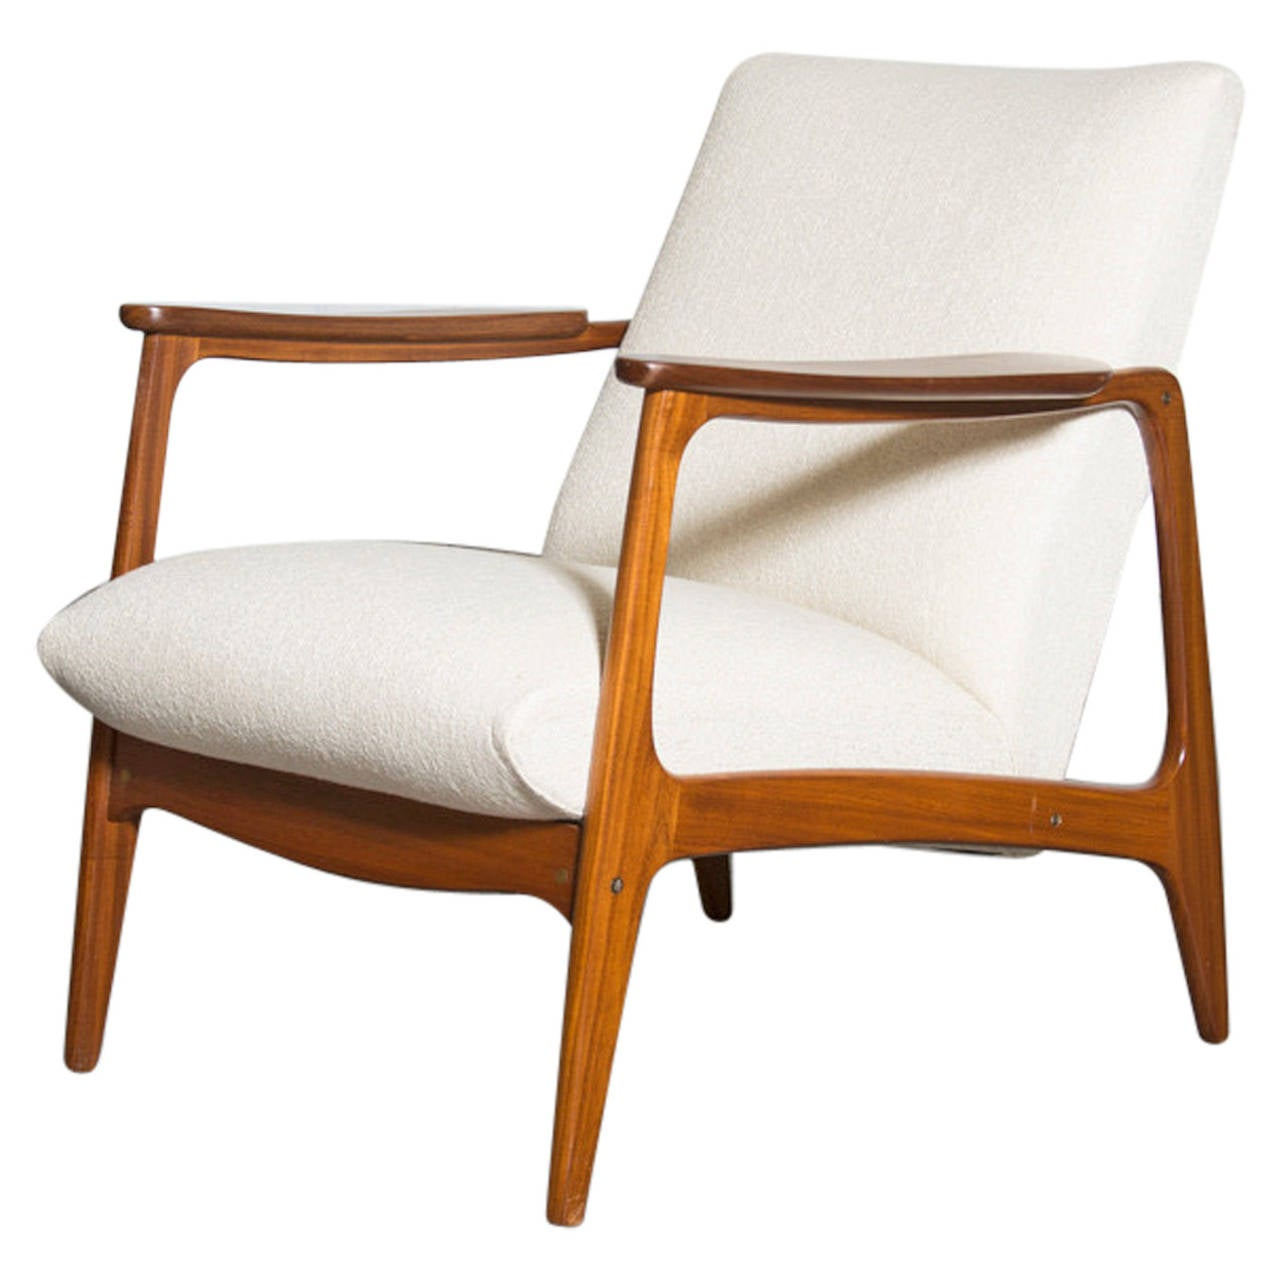 Mid Century Upholstered Chair Mid Century Teak Upholstered Lounge Chair At 1stdibs